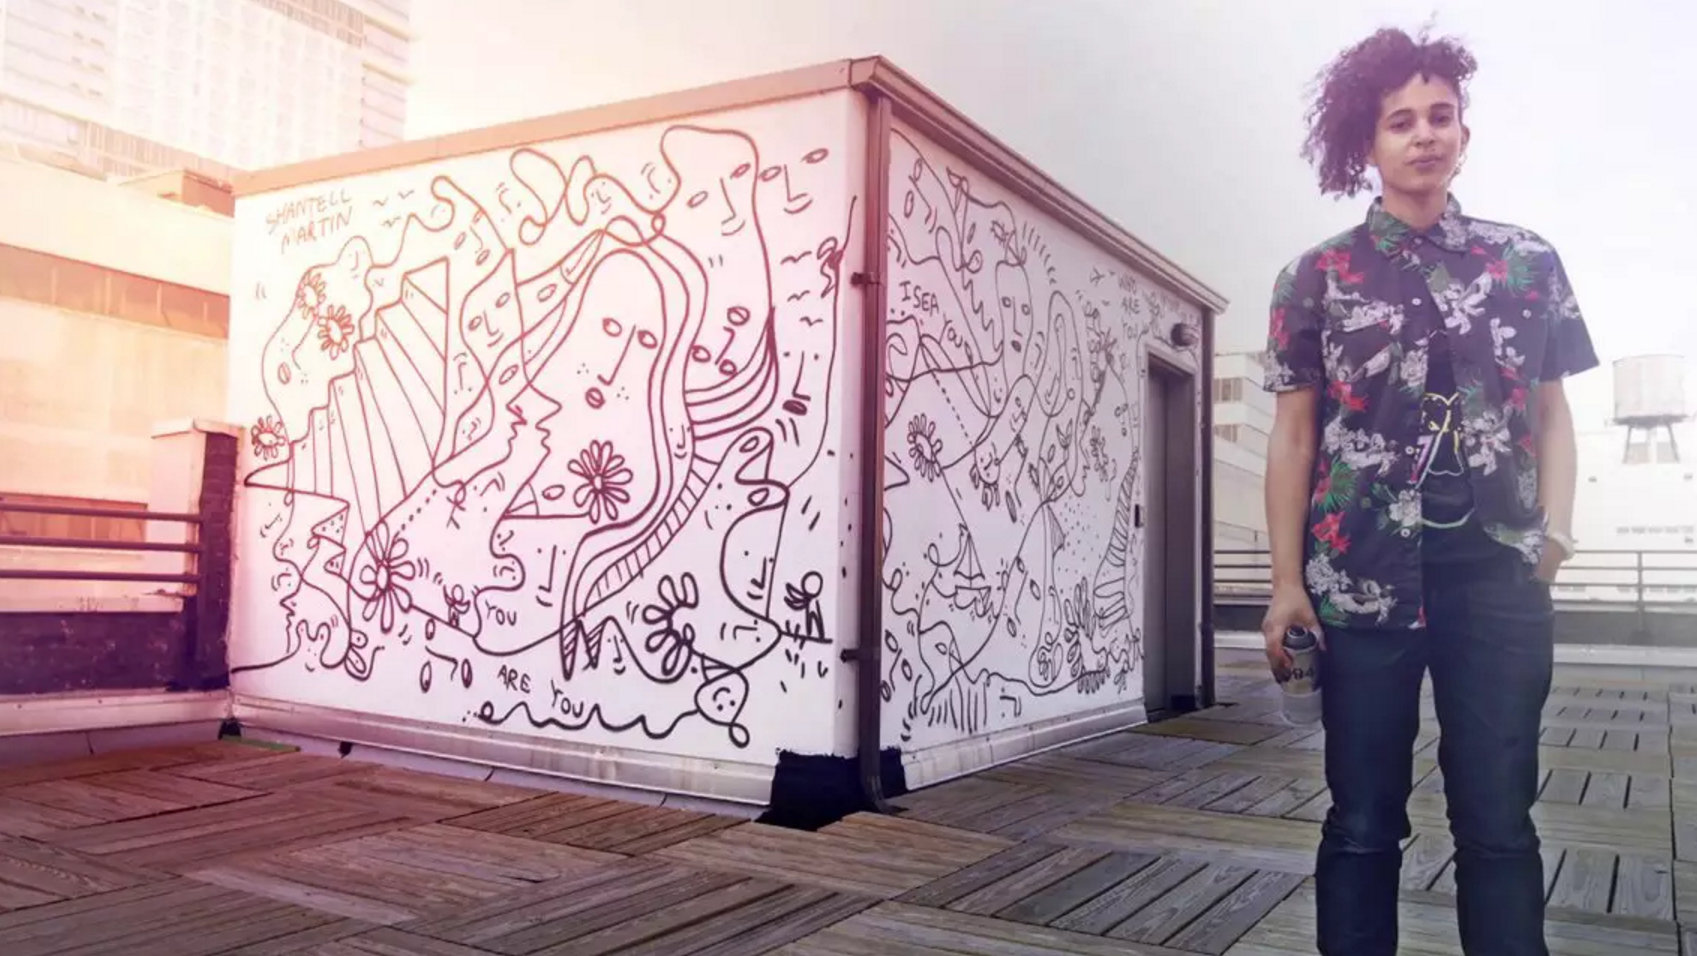 Shantell Martin, shown here in a still from a promo video for the defunct website Animal New York, will visit Buffalo next spring to complete a mural on the East Side.